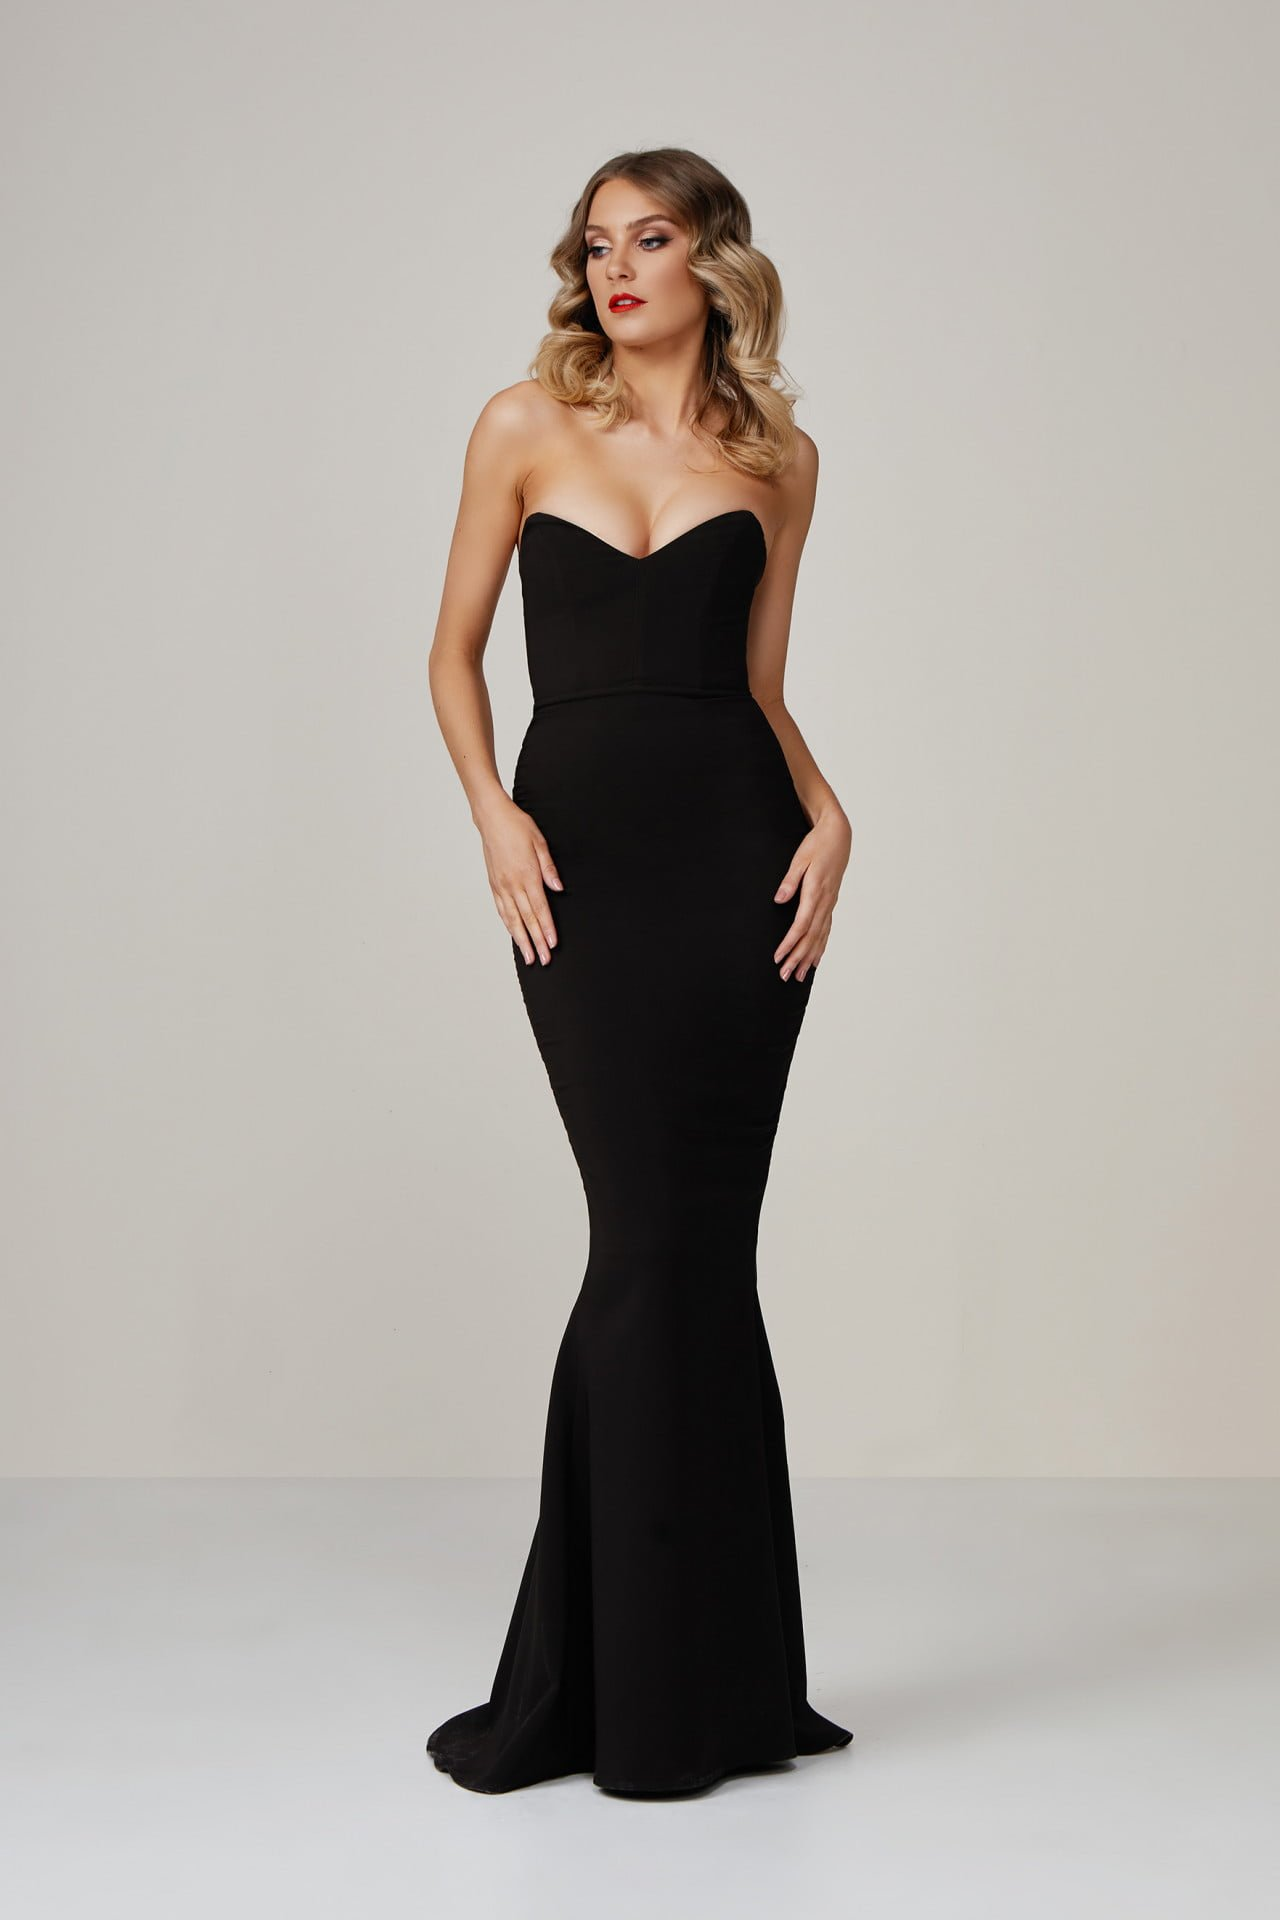 Nookie Magic Gown Floor Length, Maxi, Strapless Black